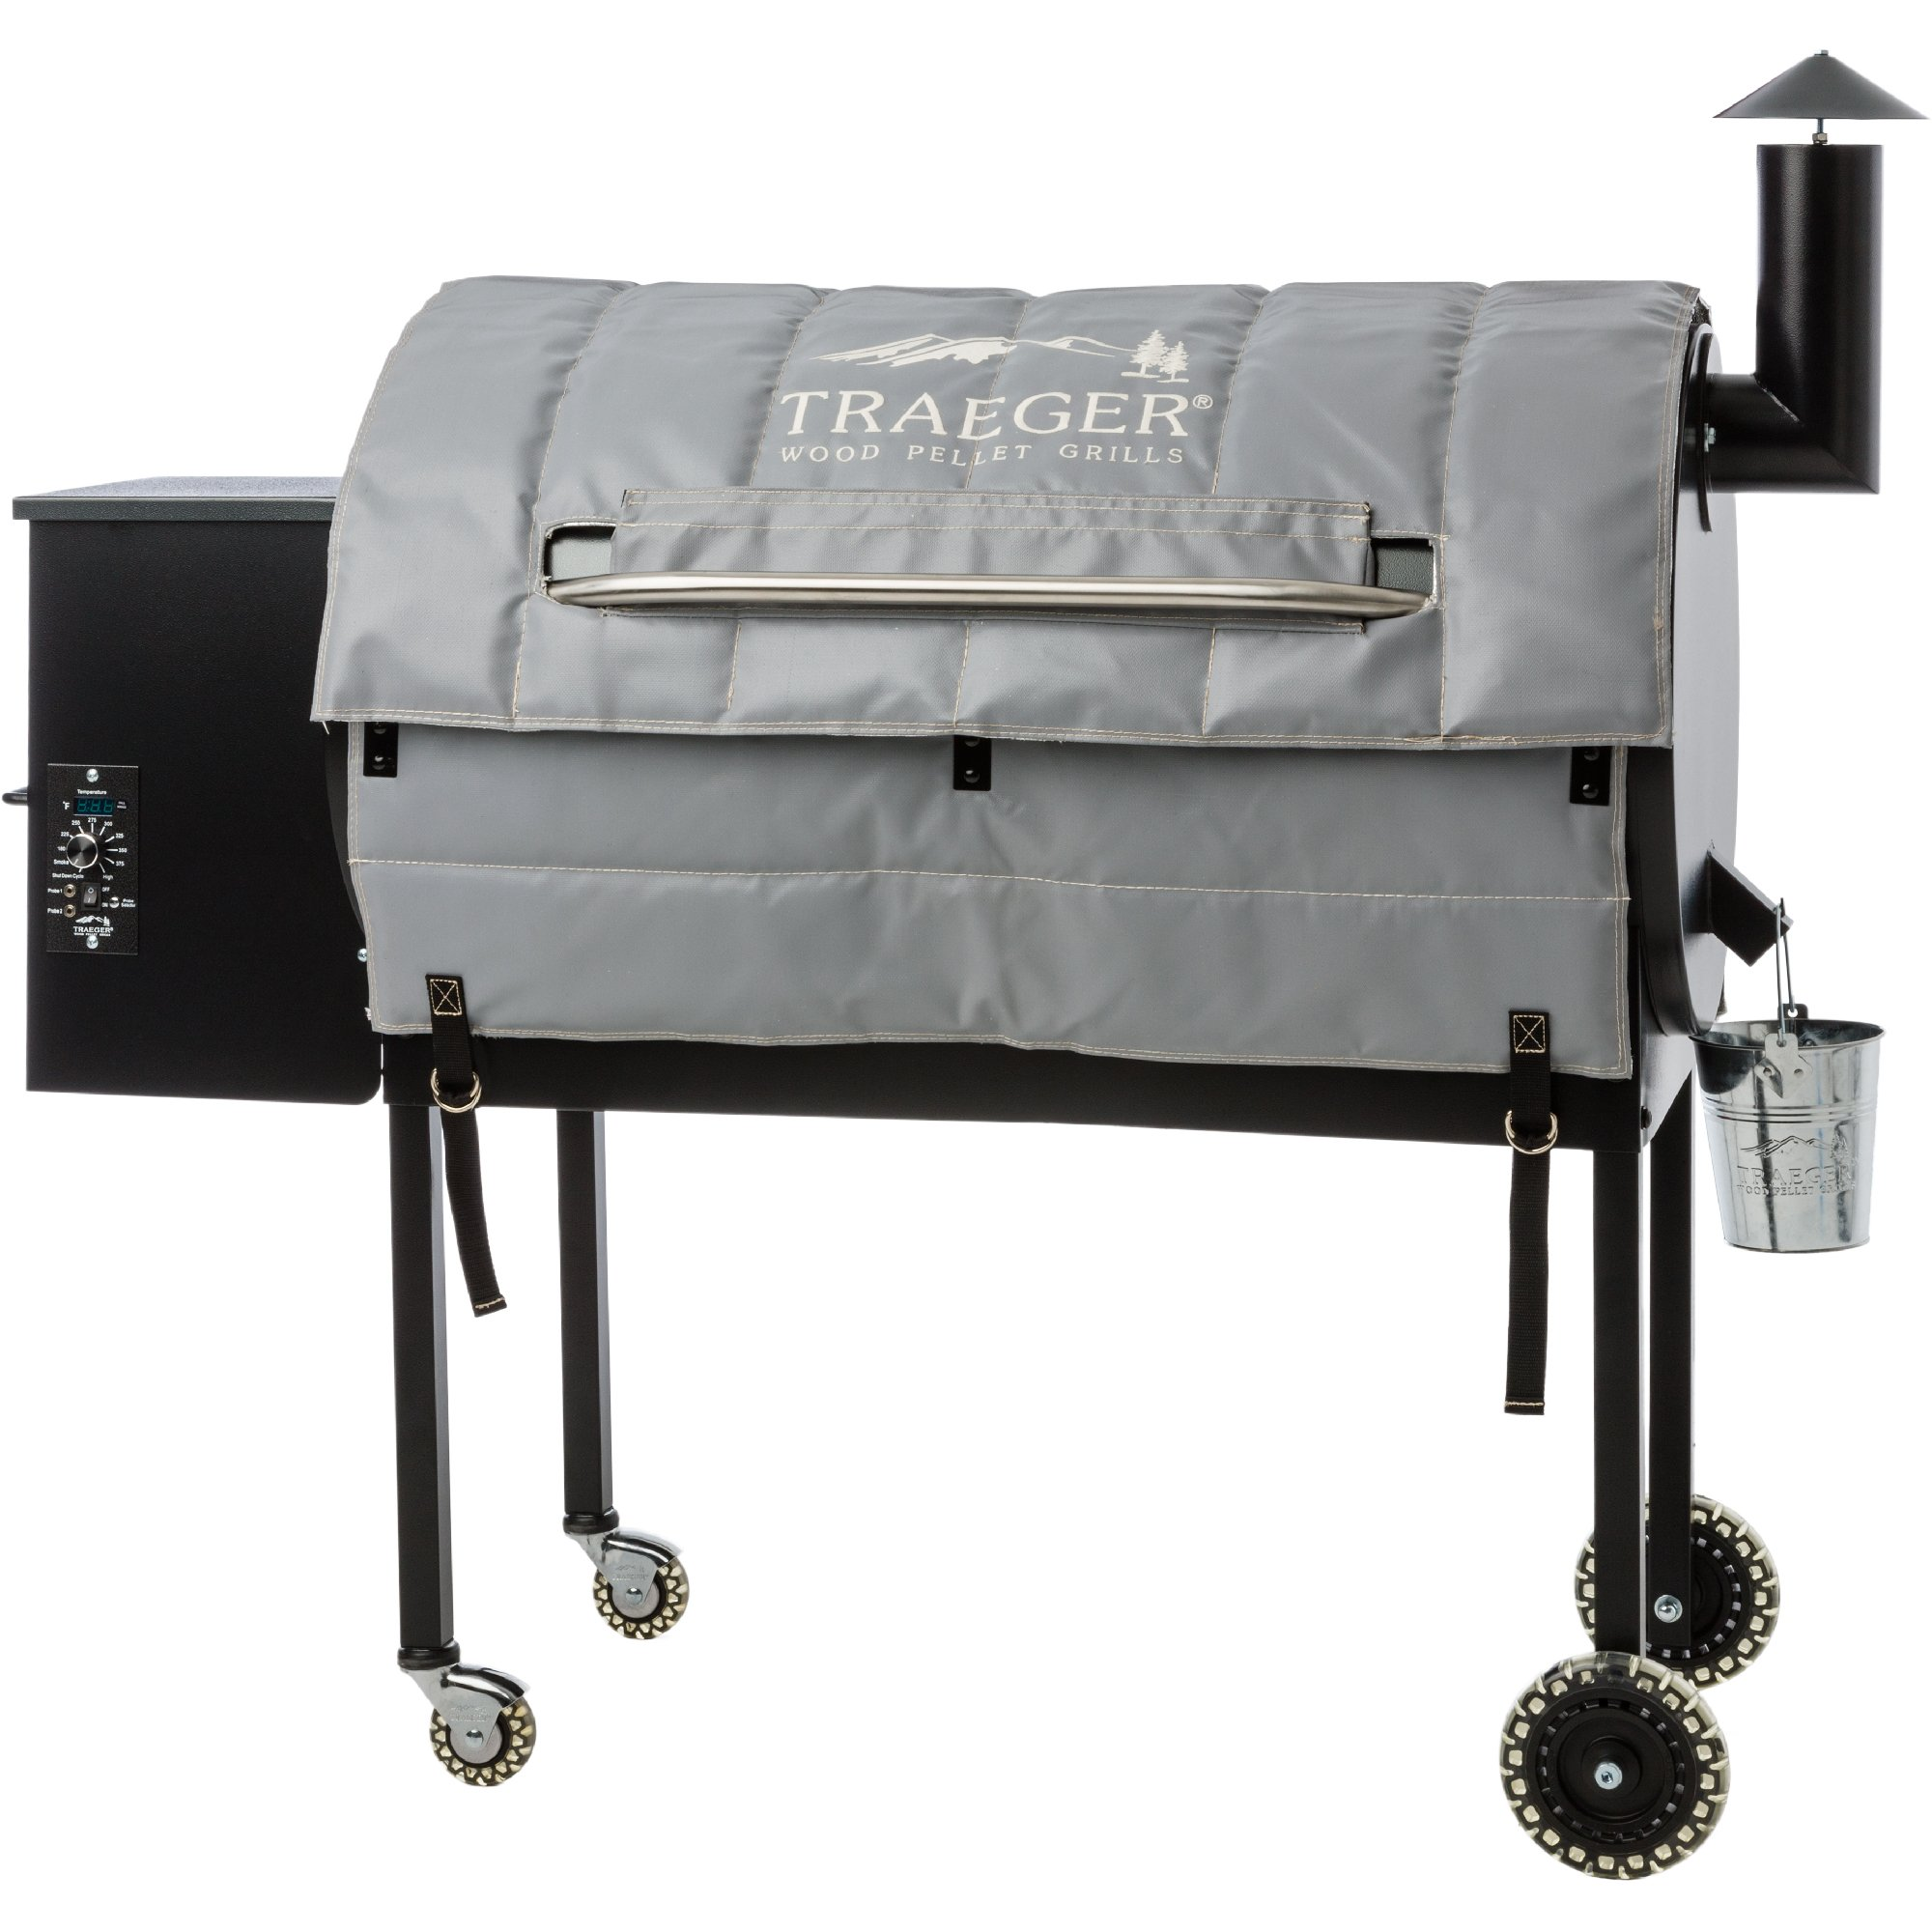 Traeger Grills 34 Series BBQ Grill Insulation Blanket for Winter Cooking